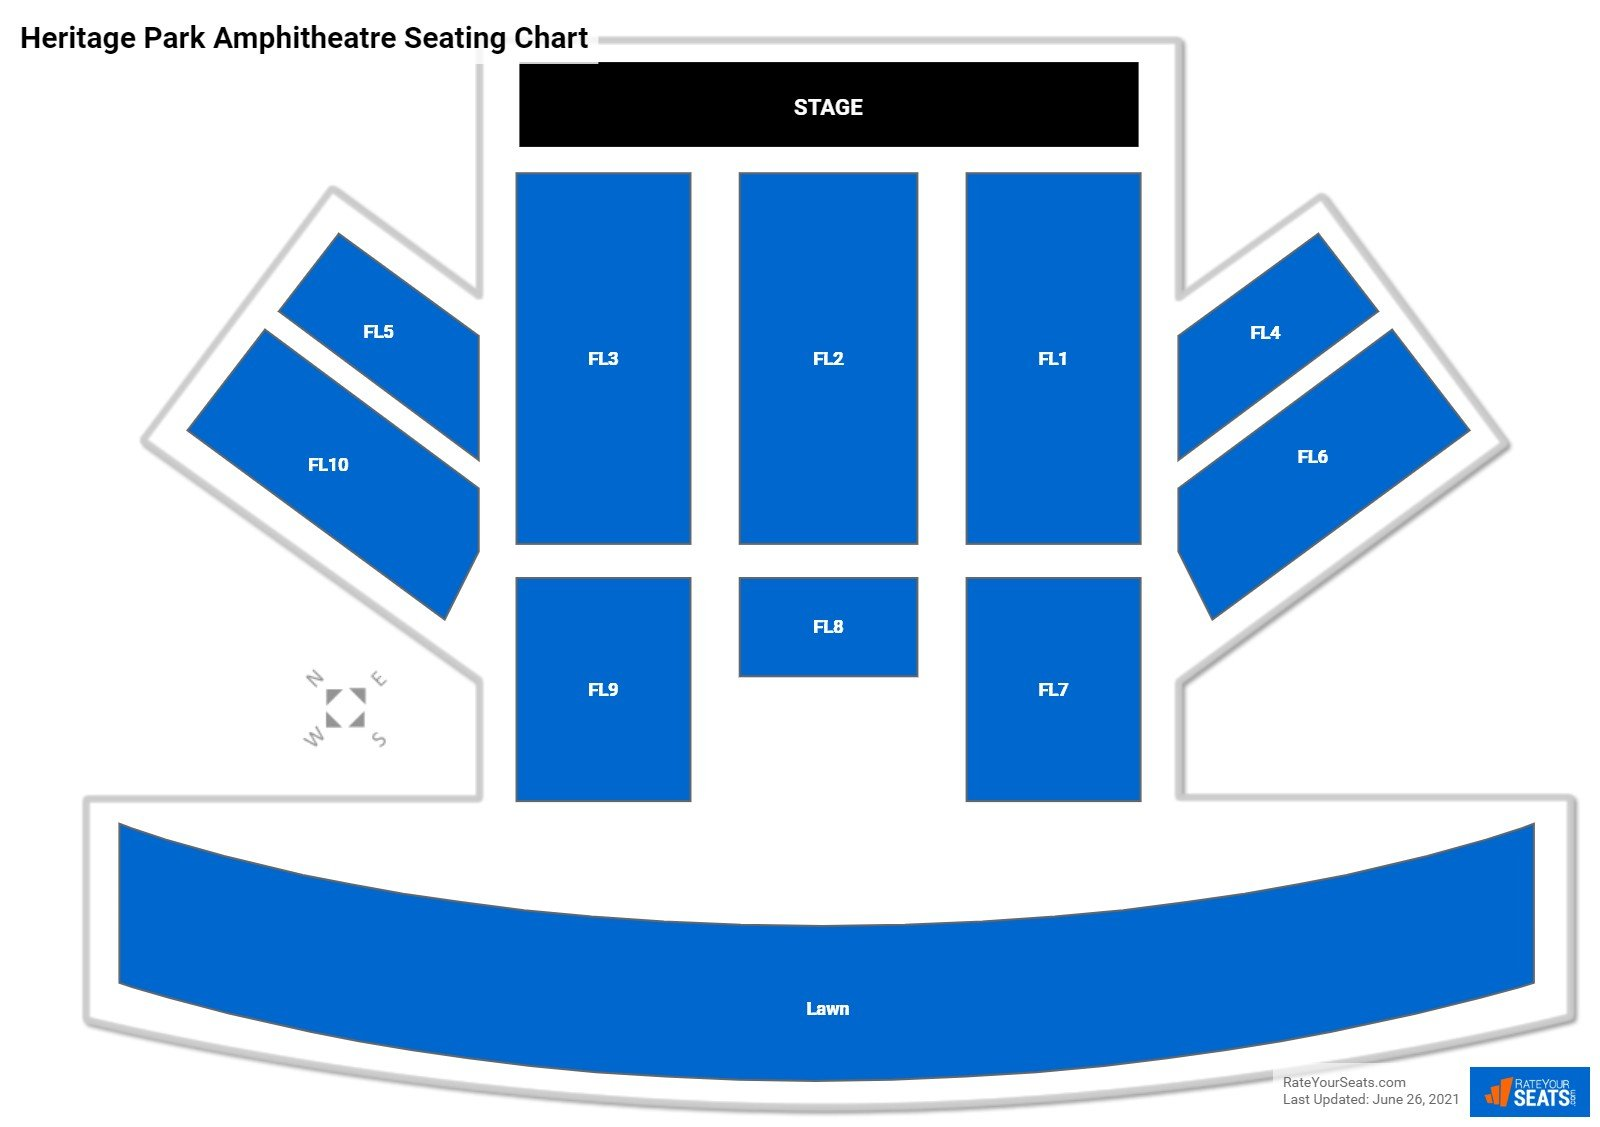 Heritage Park Amphitheatre Seating Chart